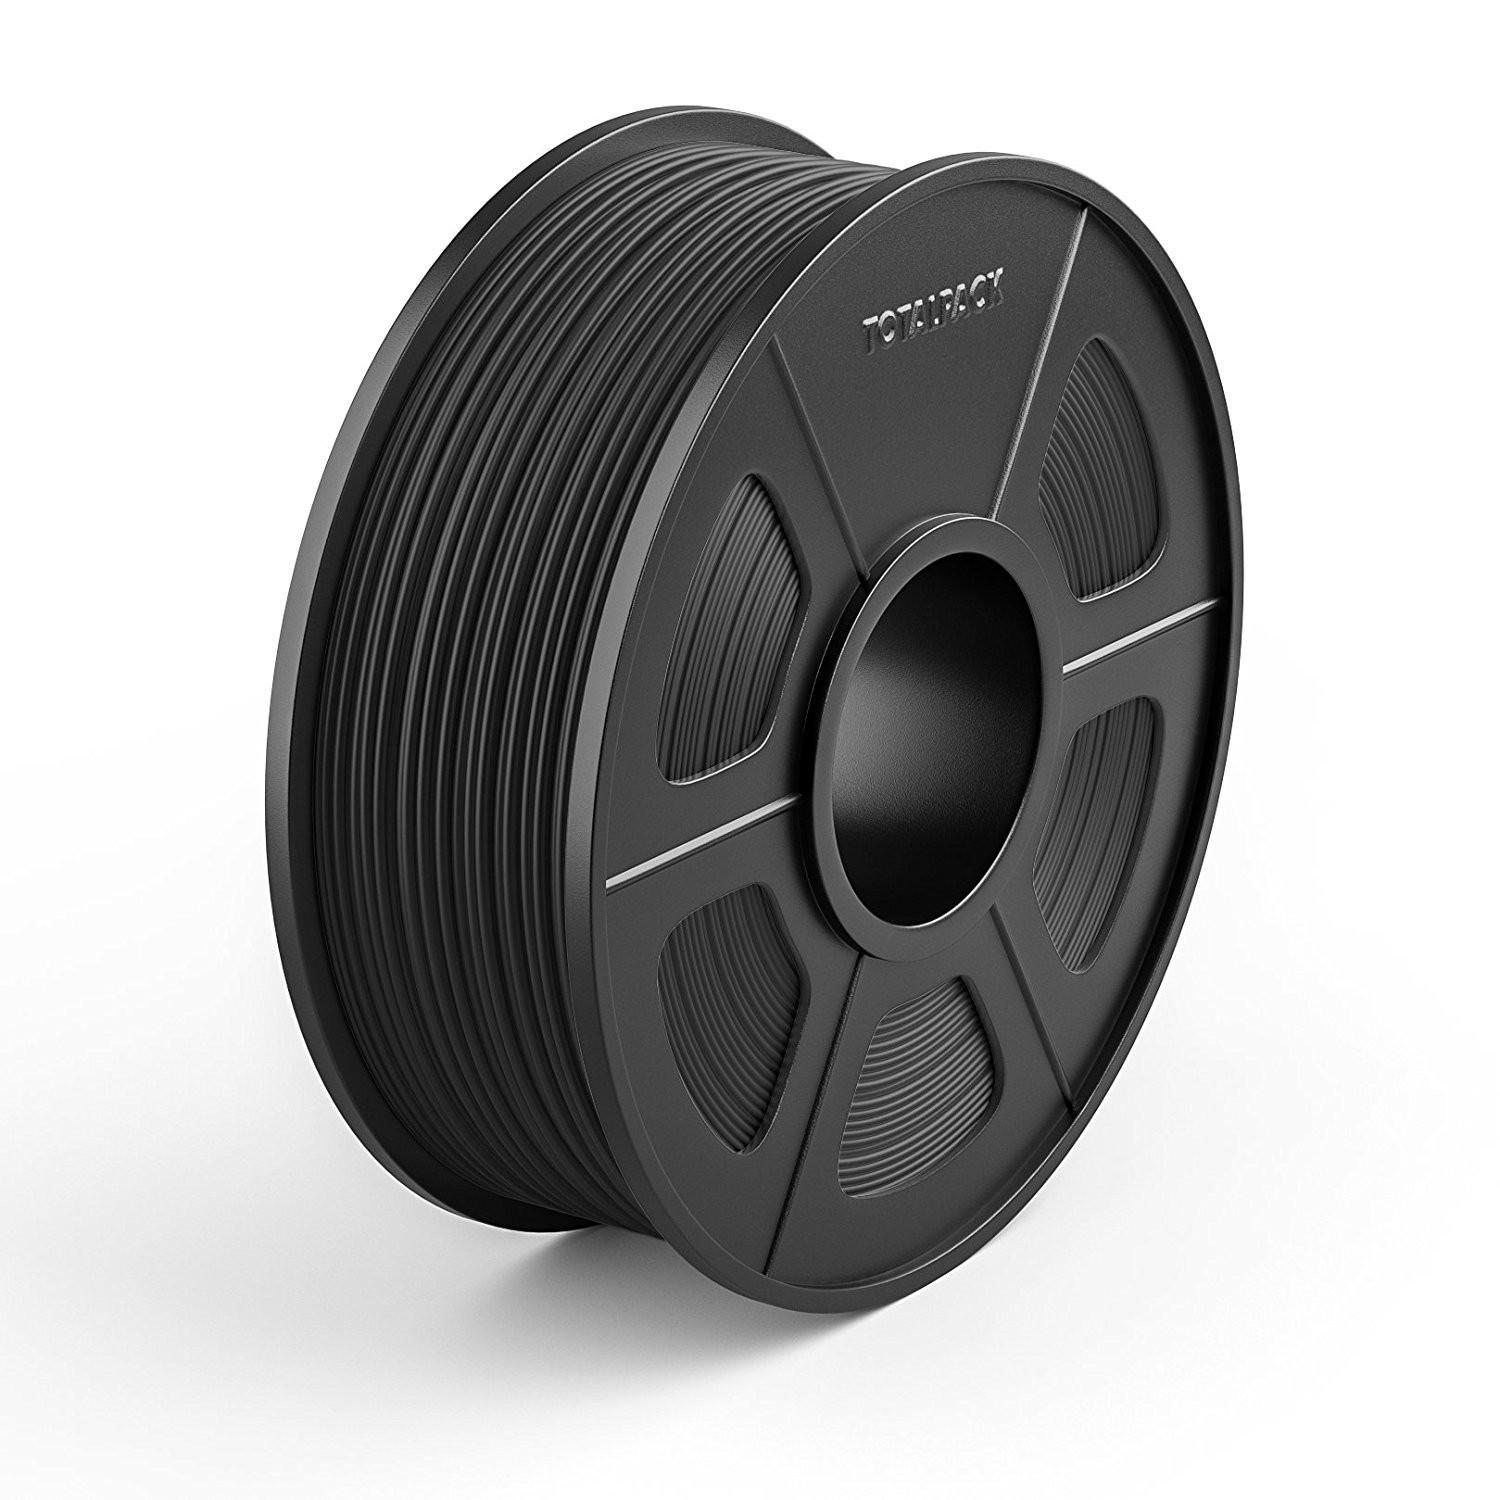 TOTALPACK® 3D ABS 1.75mm Printing Filament for 3D Printers - +/-0.02mm, 1kg Spool